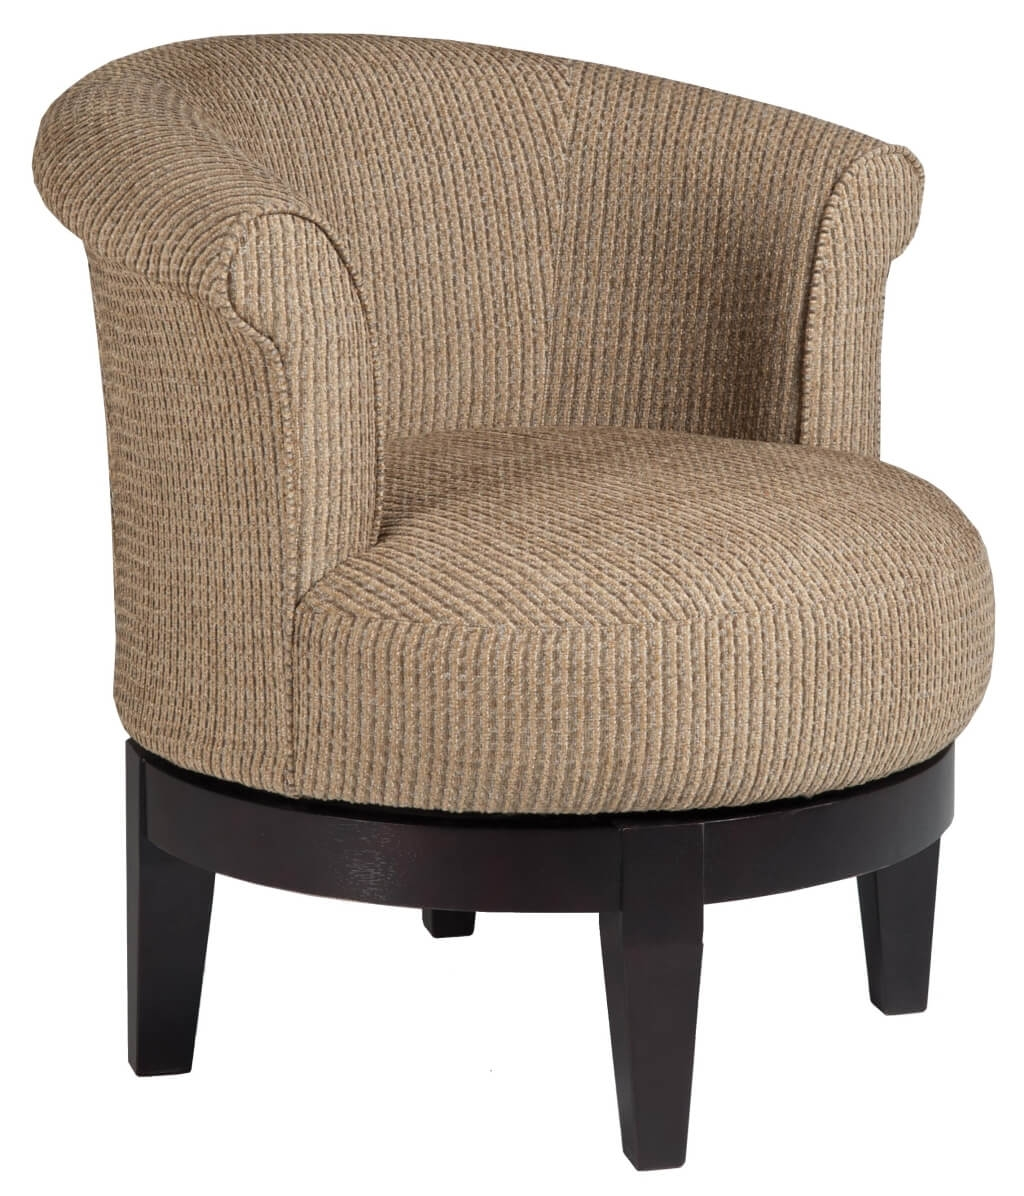 Furniture Get High Comfort With Small Chairs Small Upholstered Inside Armchairs For Small Spaces (Image 7 of 15)